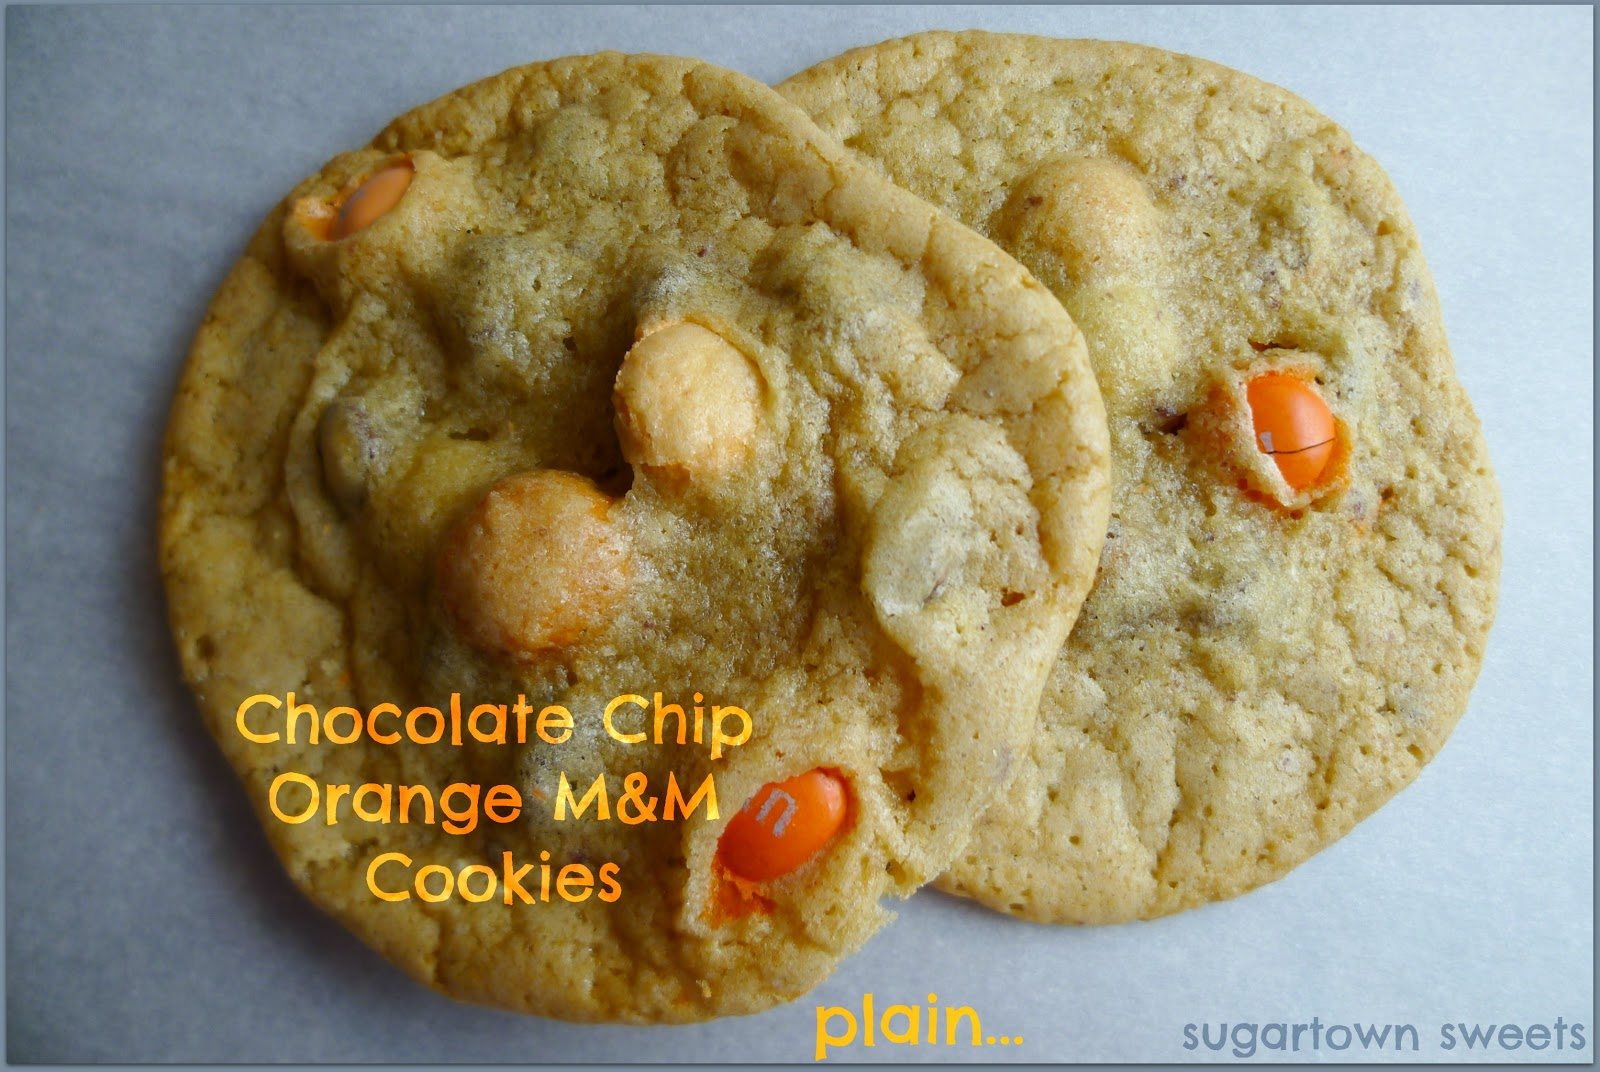 ... Sweets: Chocolate Chip Orange M&M Cookies Dipped In Chocolate